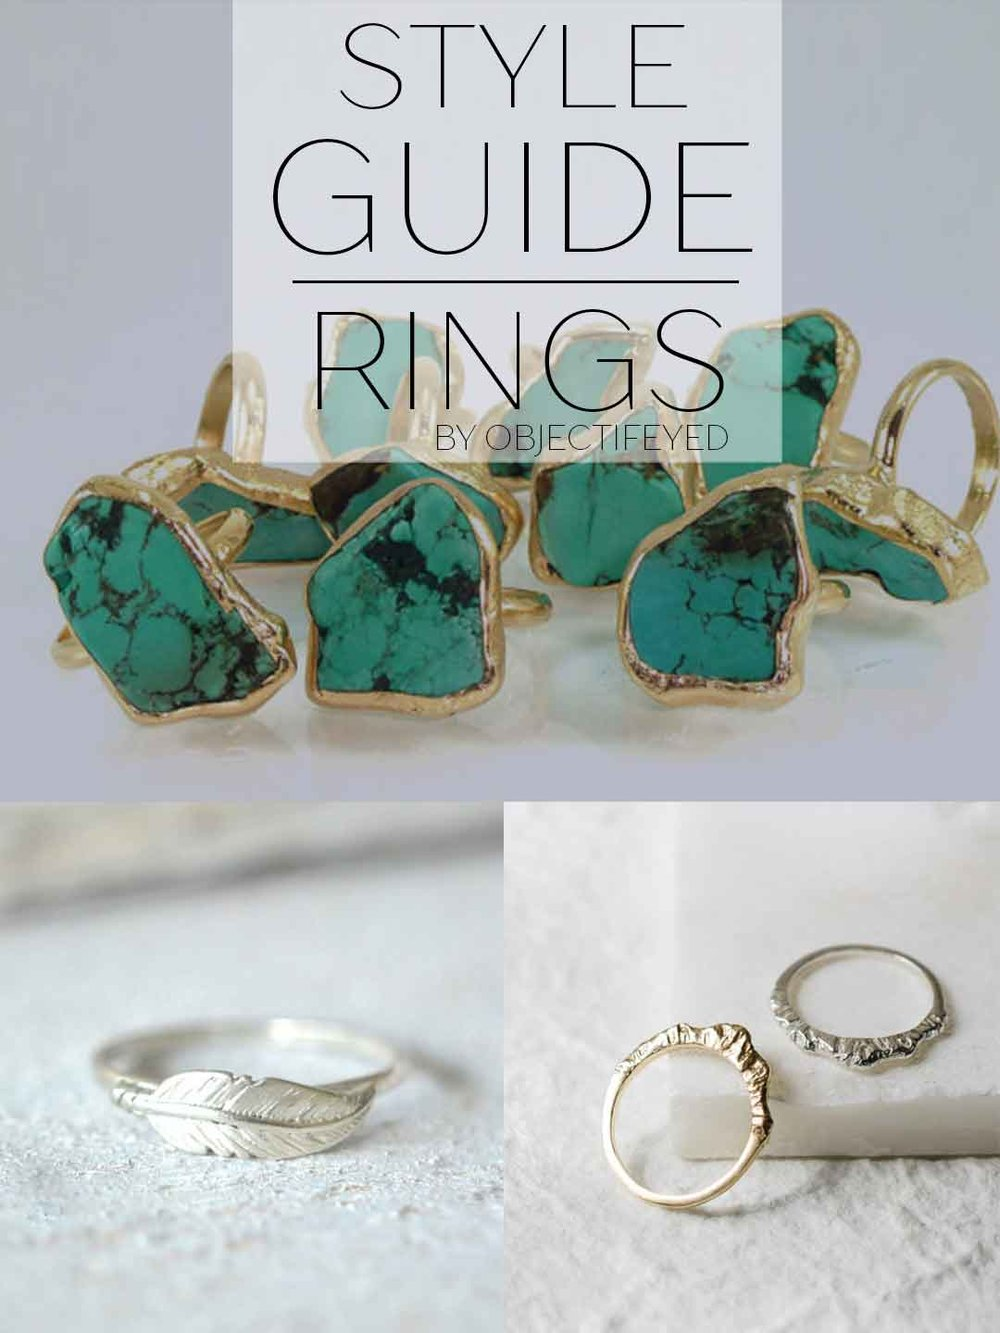 Style Guide to Rings by Objectifeyed